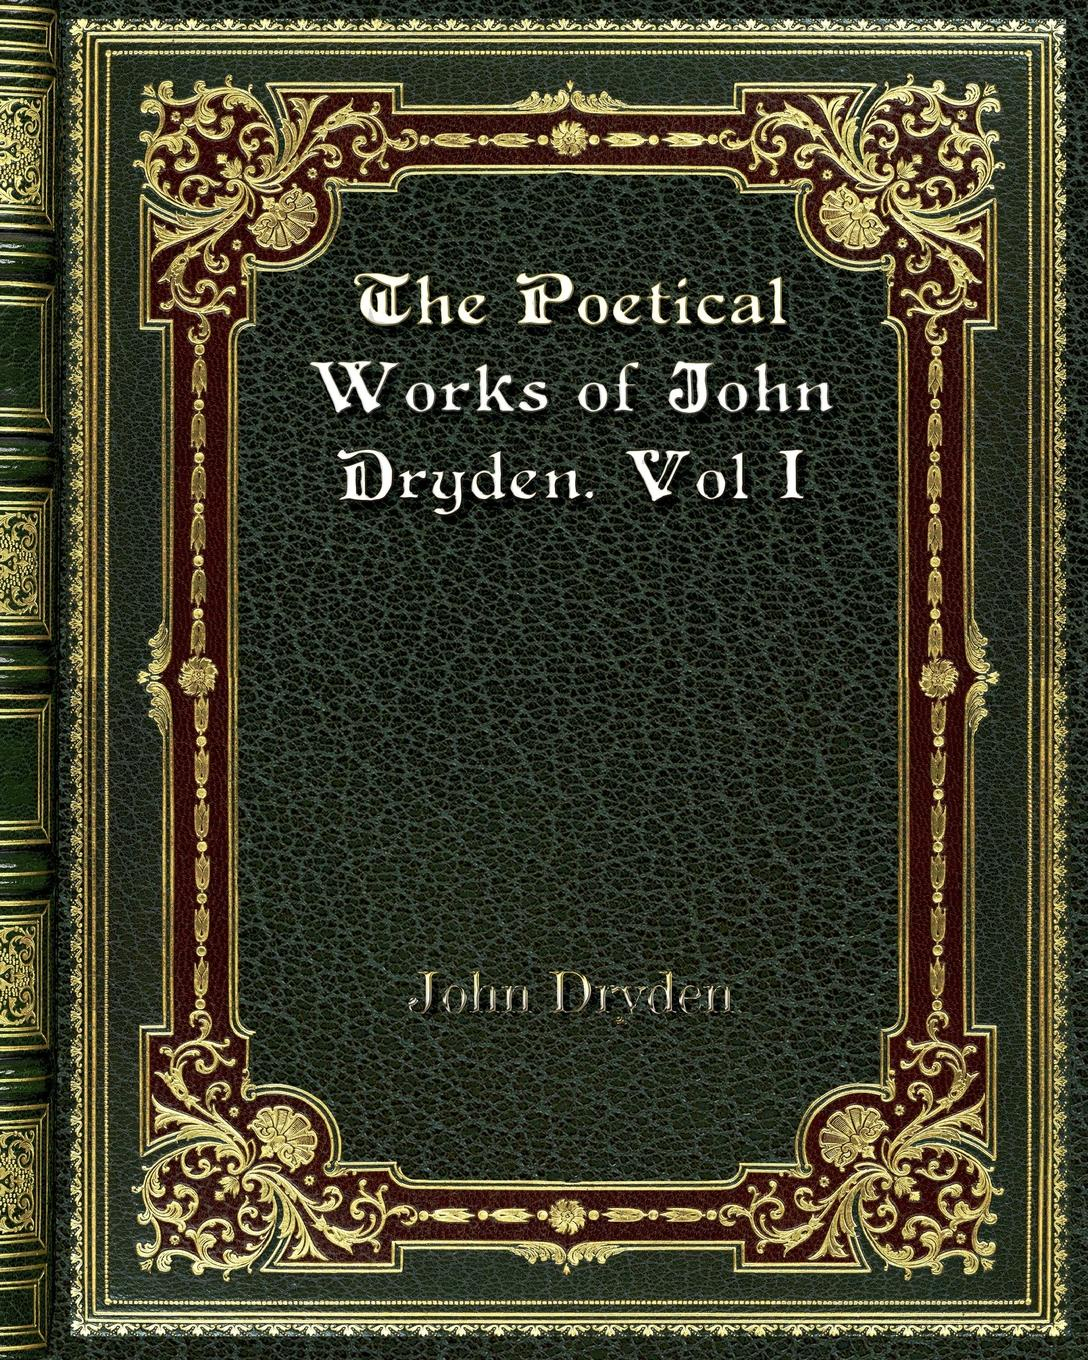 John Dryden The Poetical Works of John Dryden. Vol I john coningham the poetical works